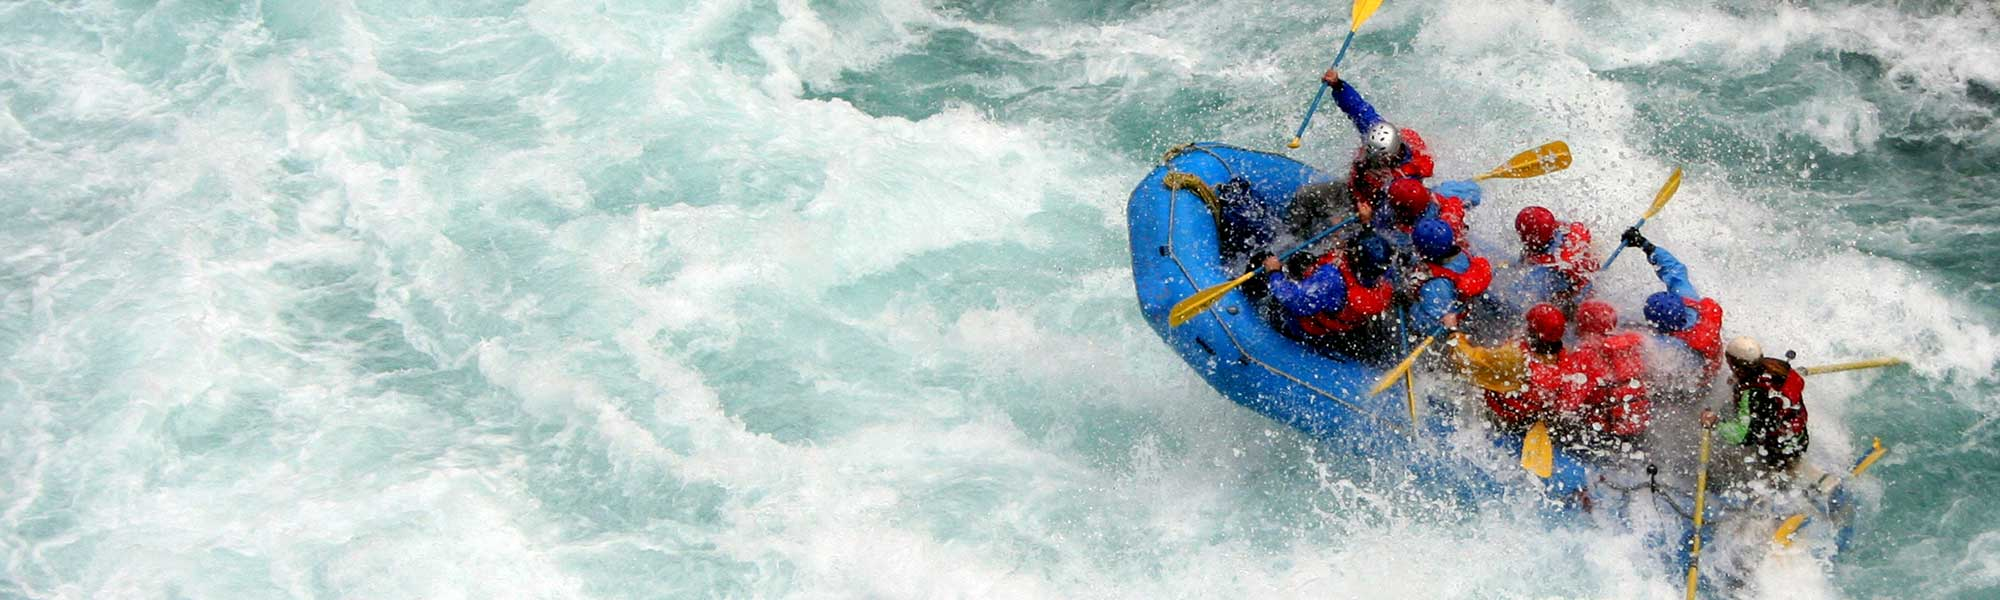 Ocoee River Whitewater Rafting